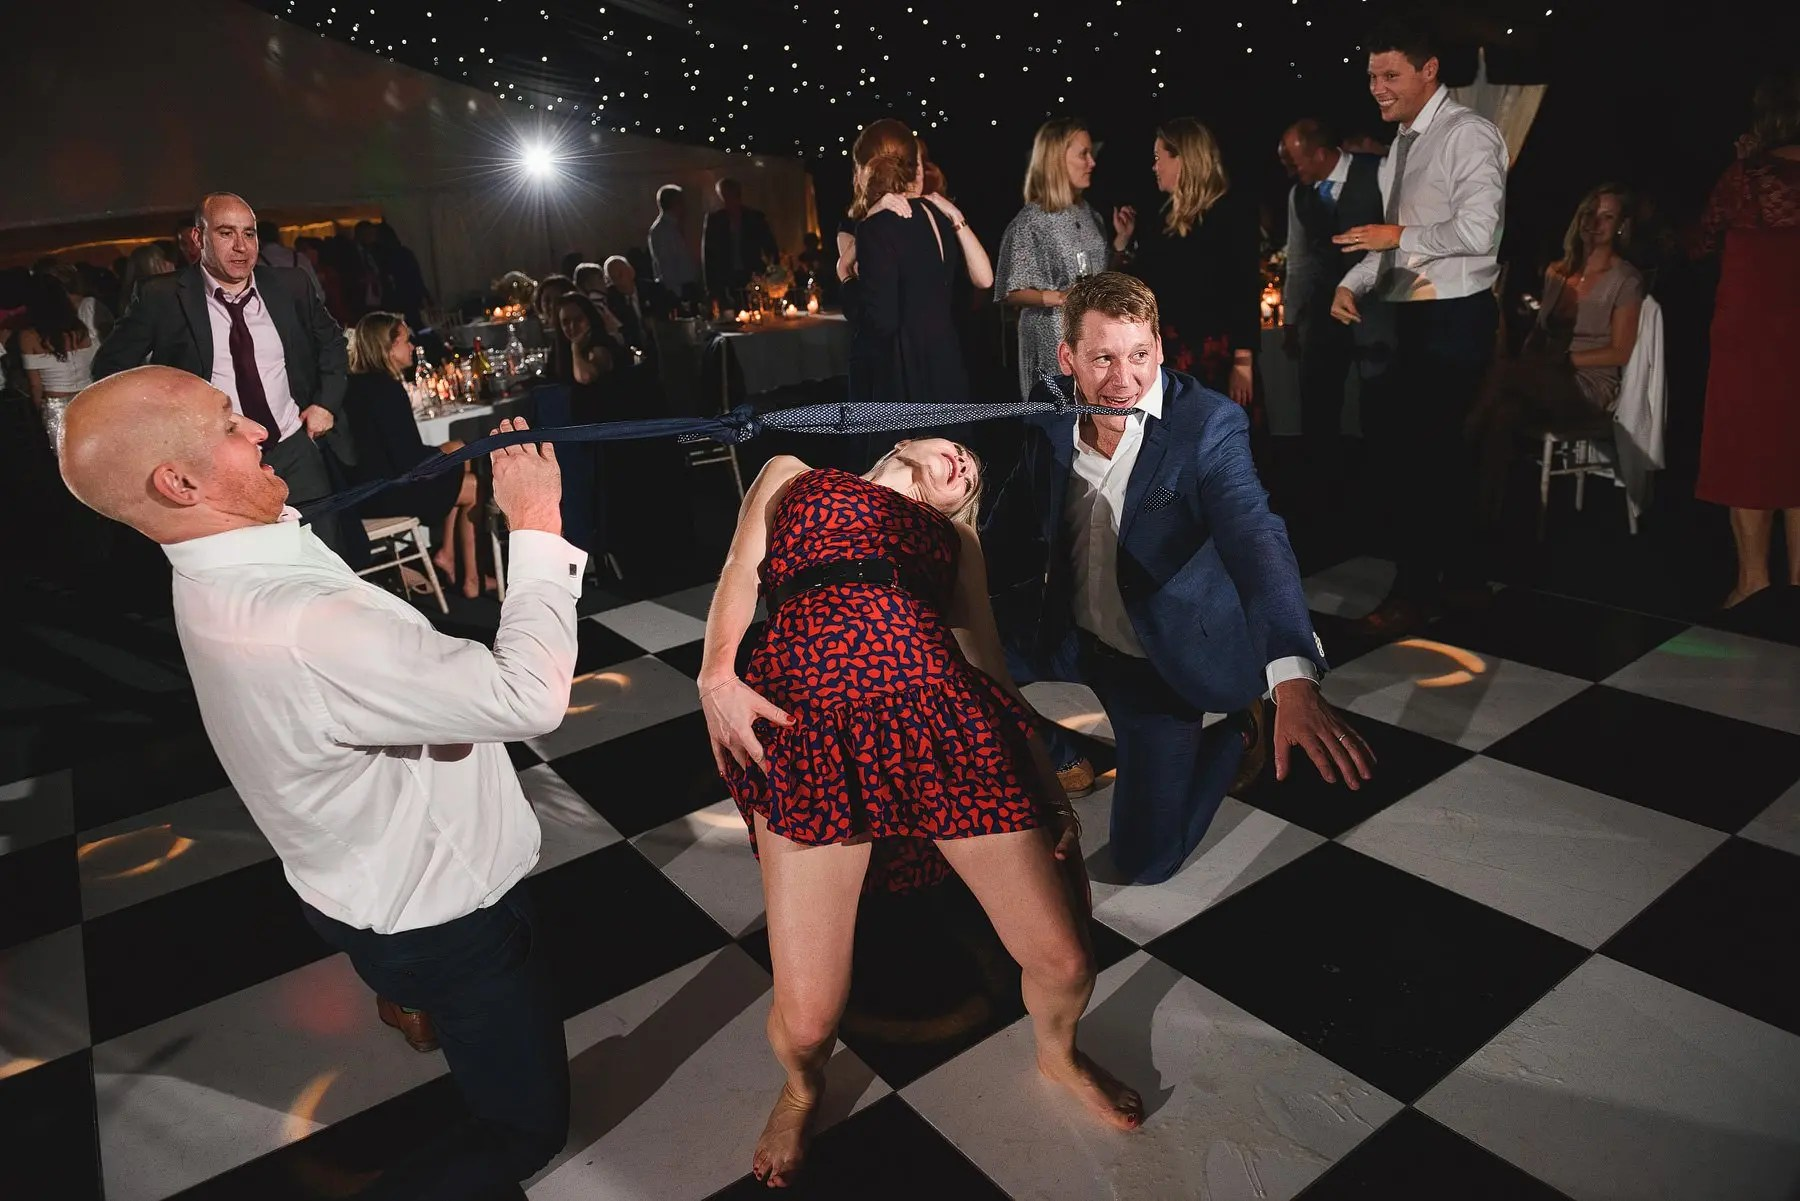 limbo at a wedding in london